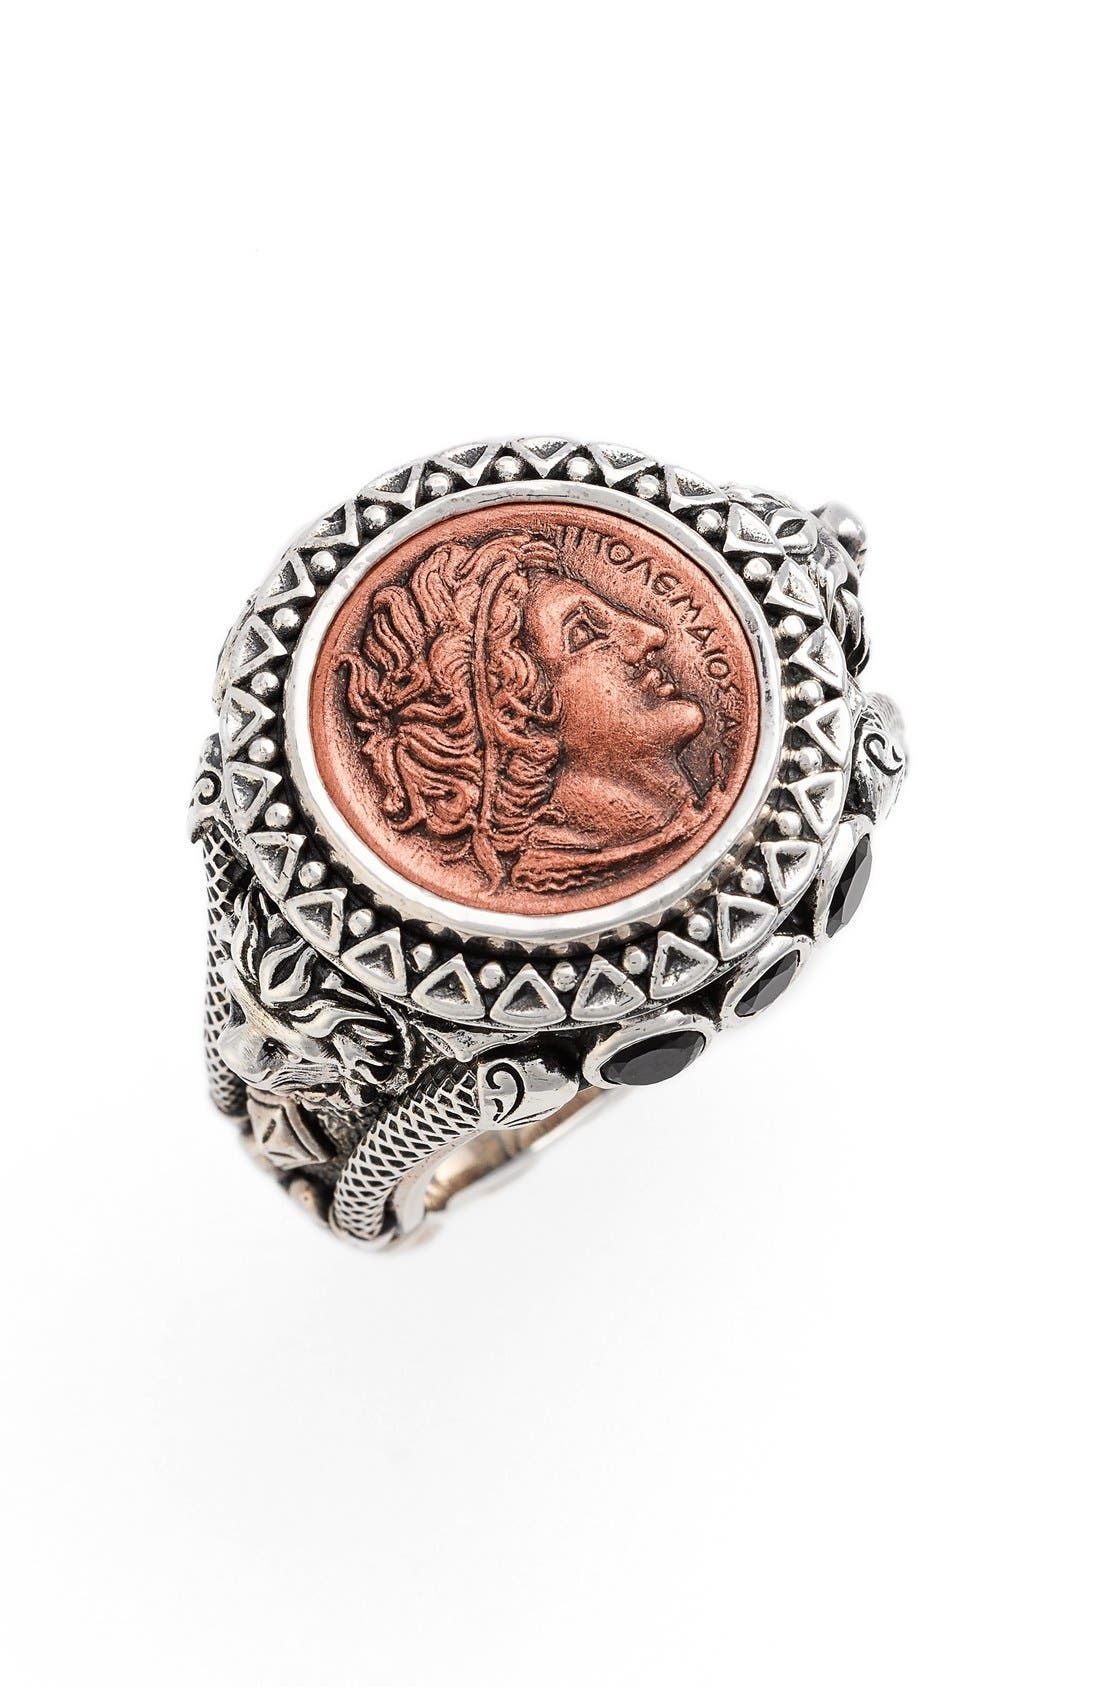 KONSTANTINO 'Aeolus - Ptolemy' Coin Ring